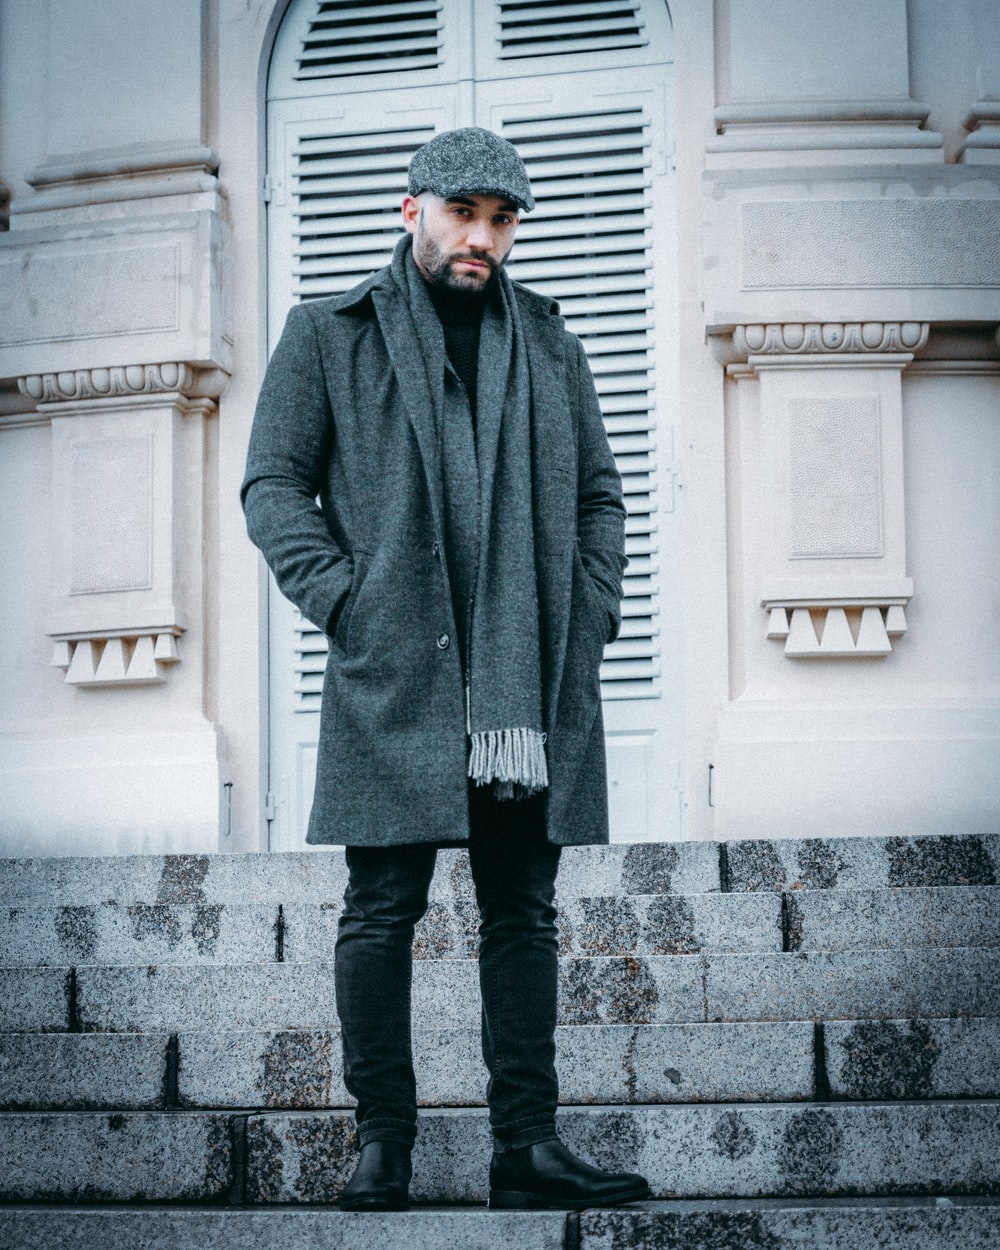 man in gray coat standing on gray concrete floor during daytime